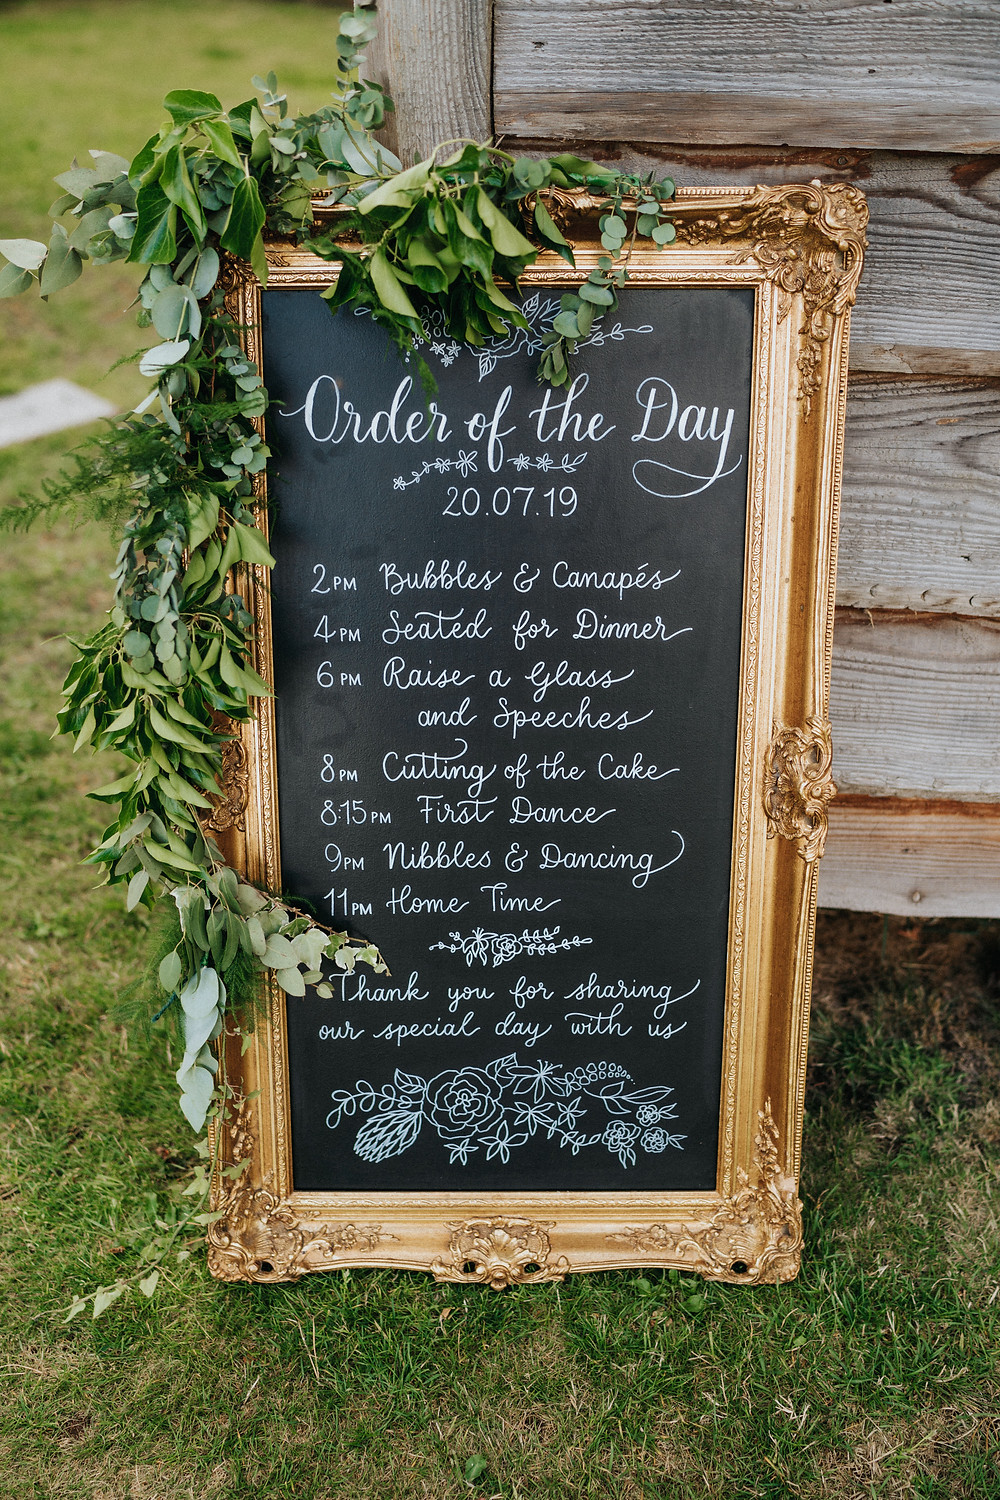 Order of the day calligraphy chalkboard for a wedding